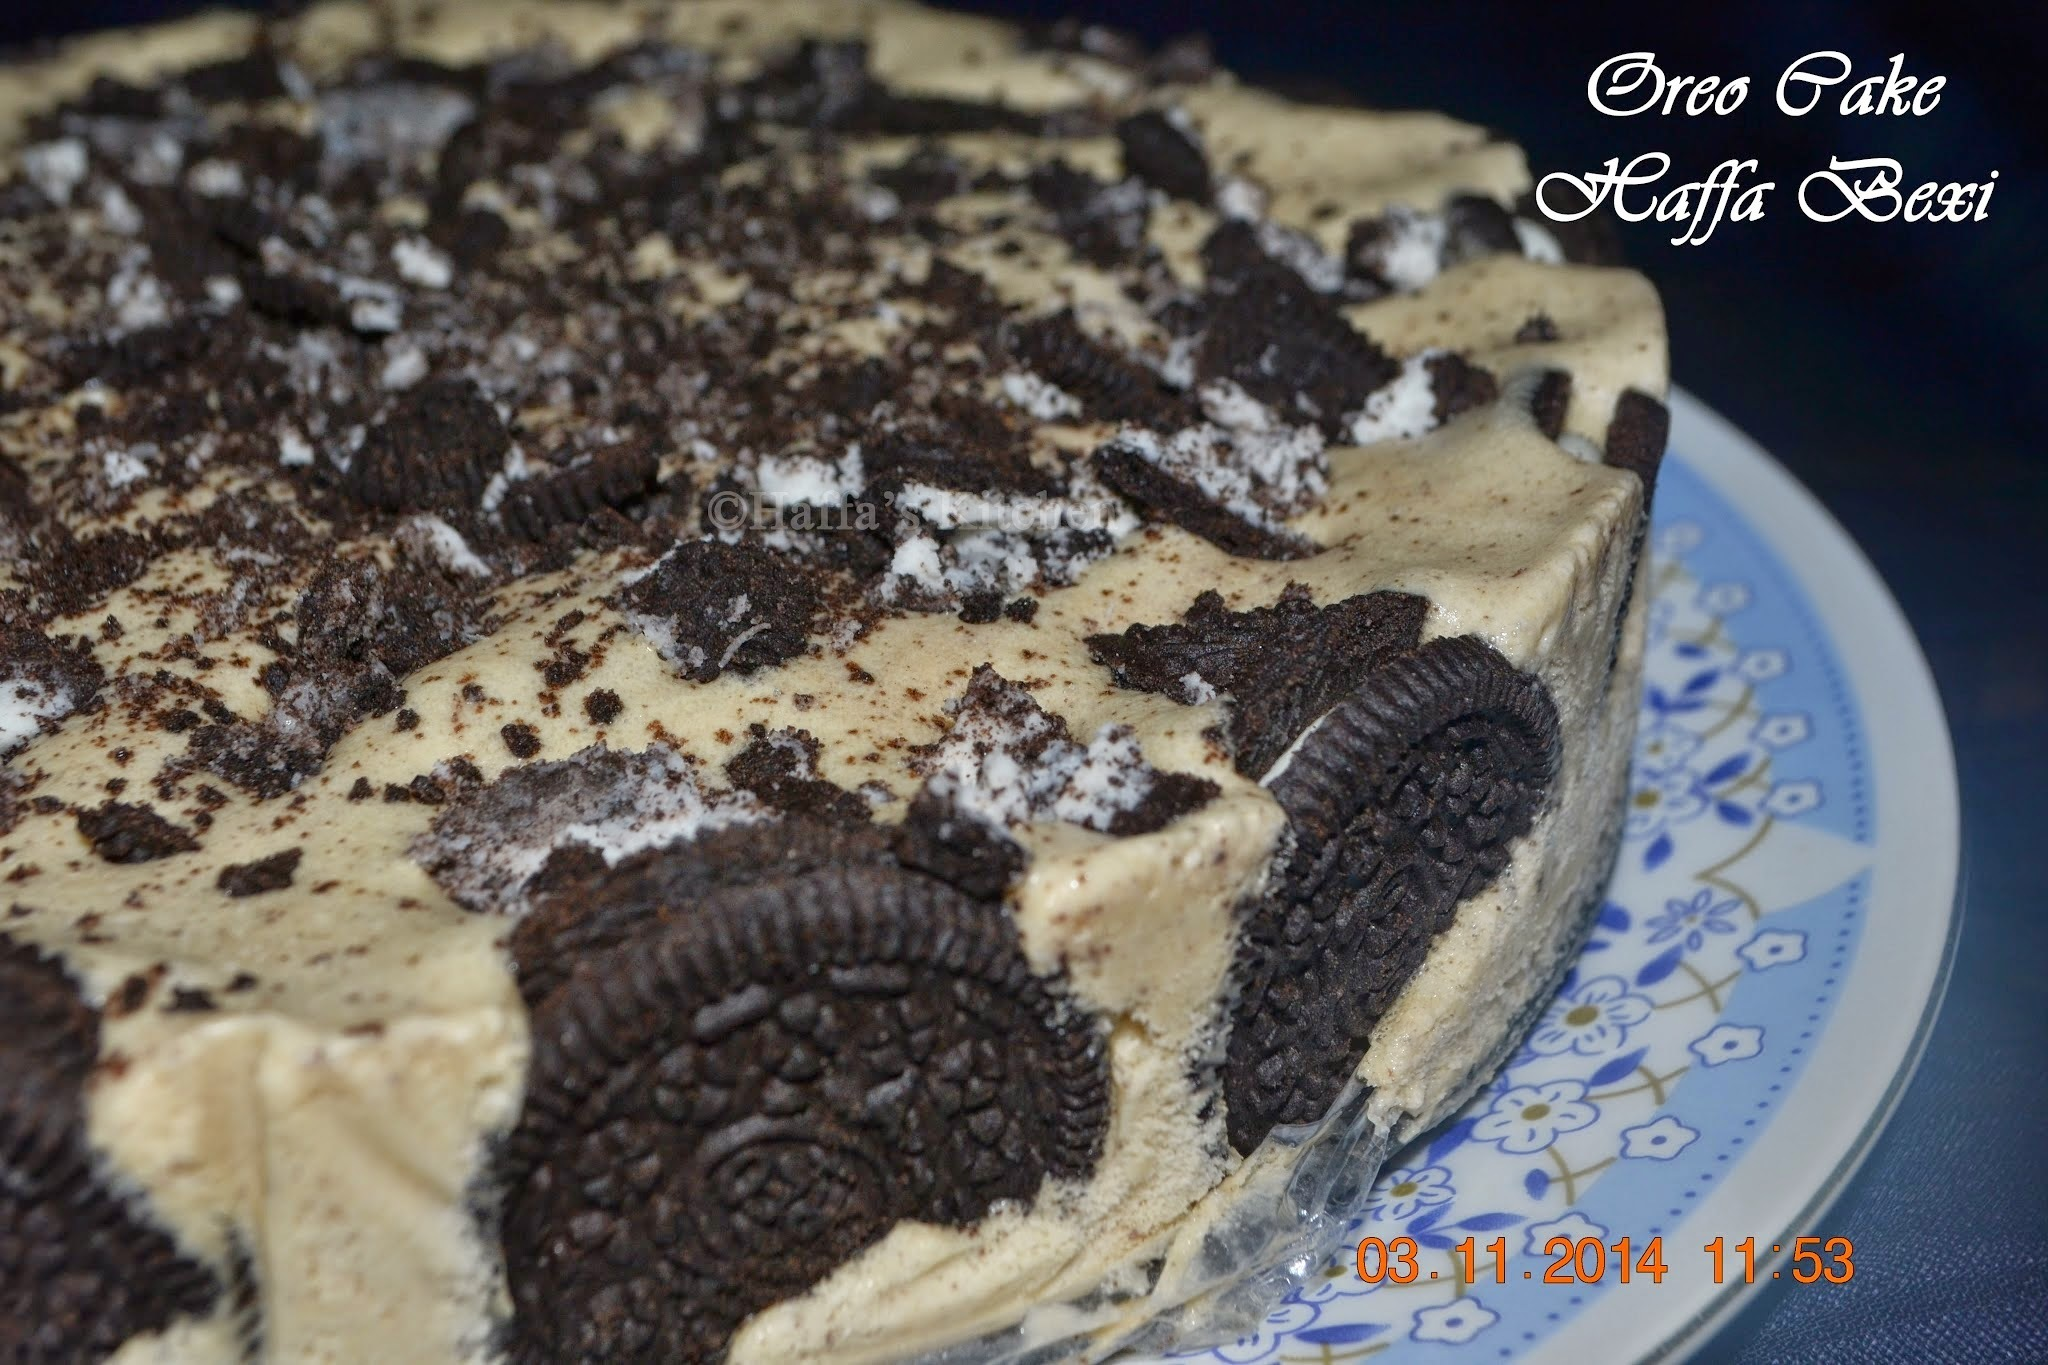 Oreo Ice cream Cake - Wedding Anniversary Special